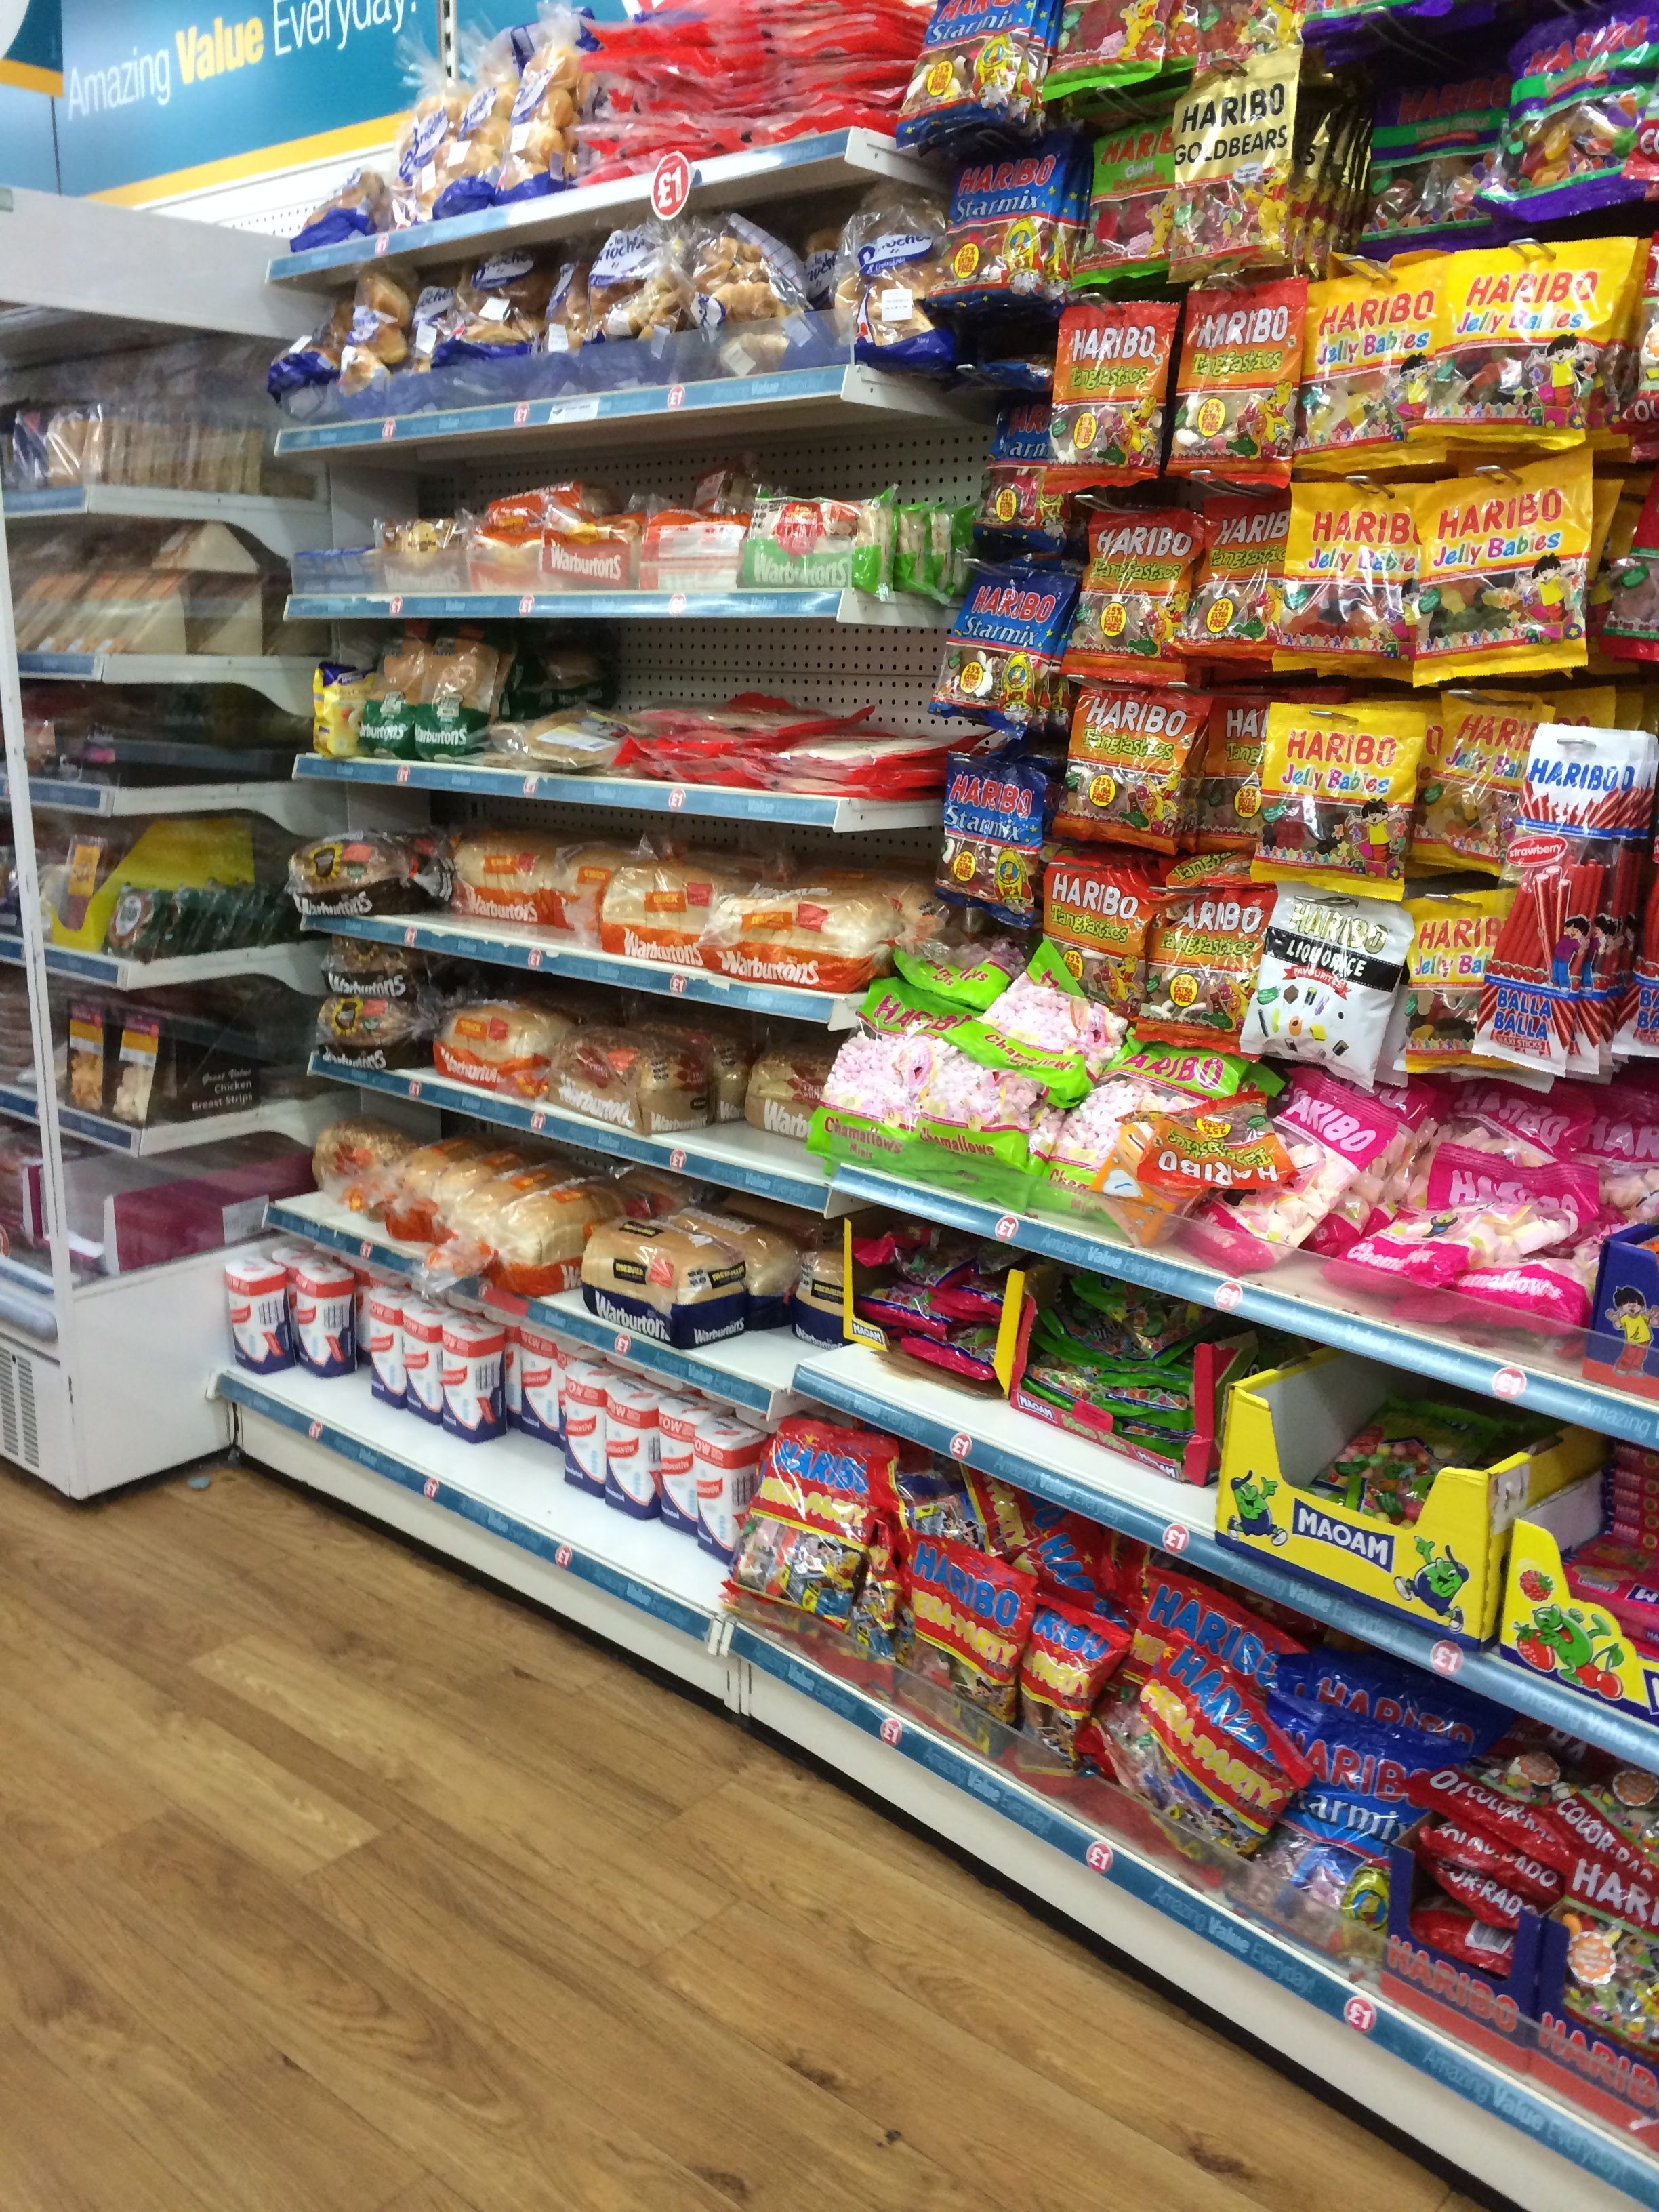 Poundland pond shops value bargains retail for Pond retailers